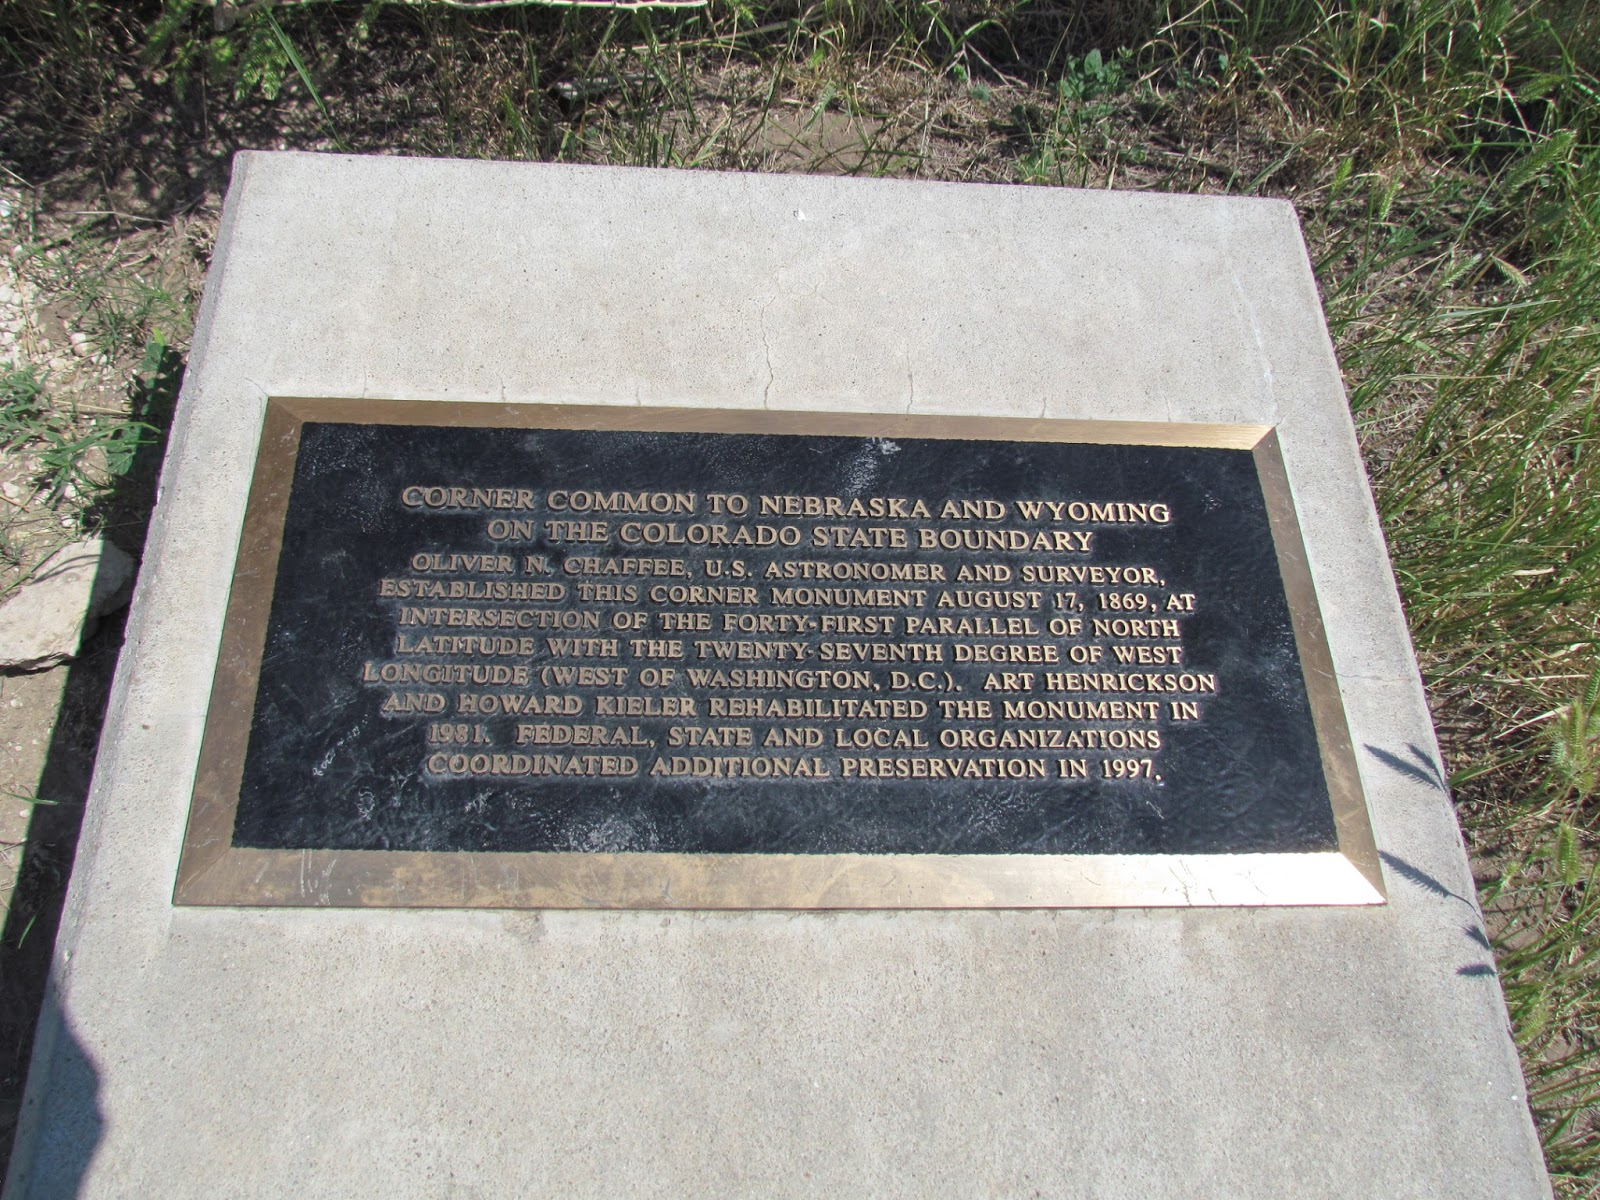 historical plaque near tripoint marker